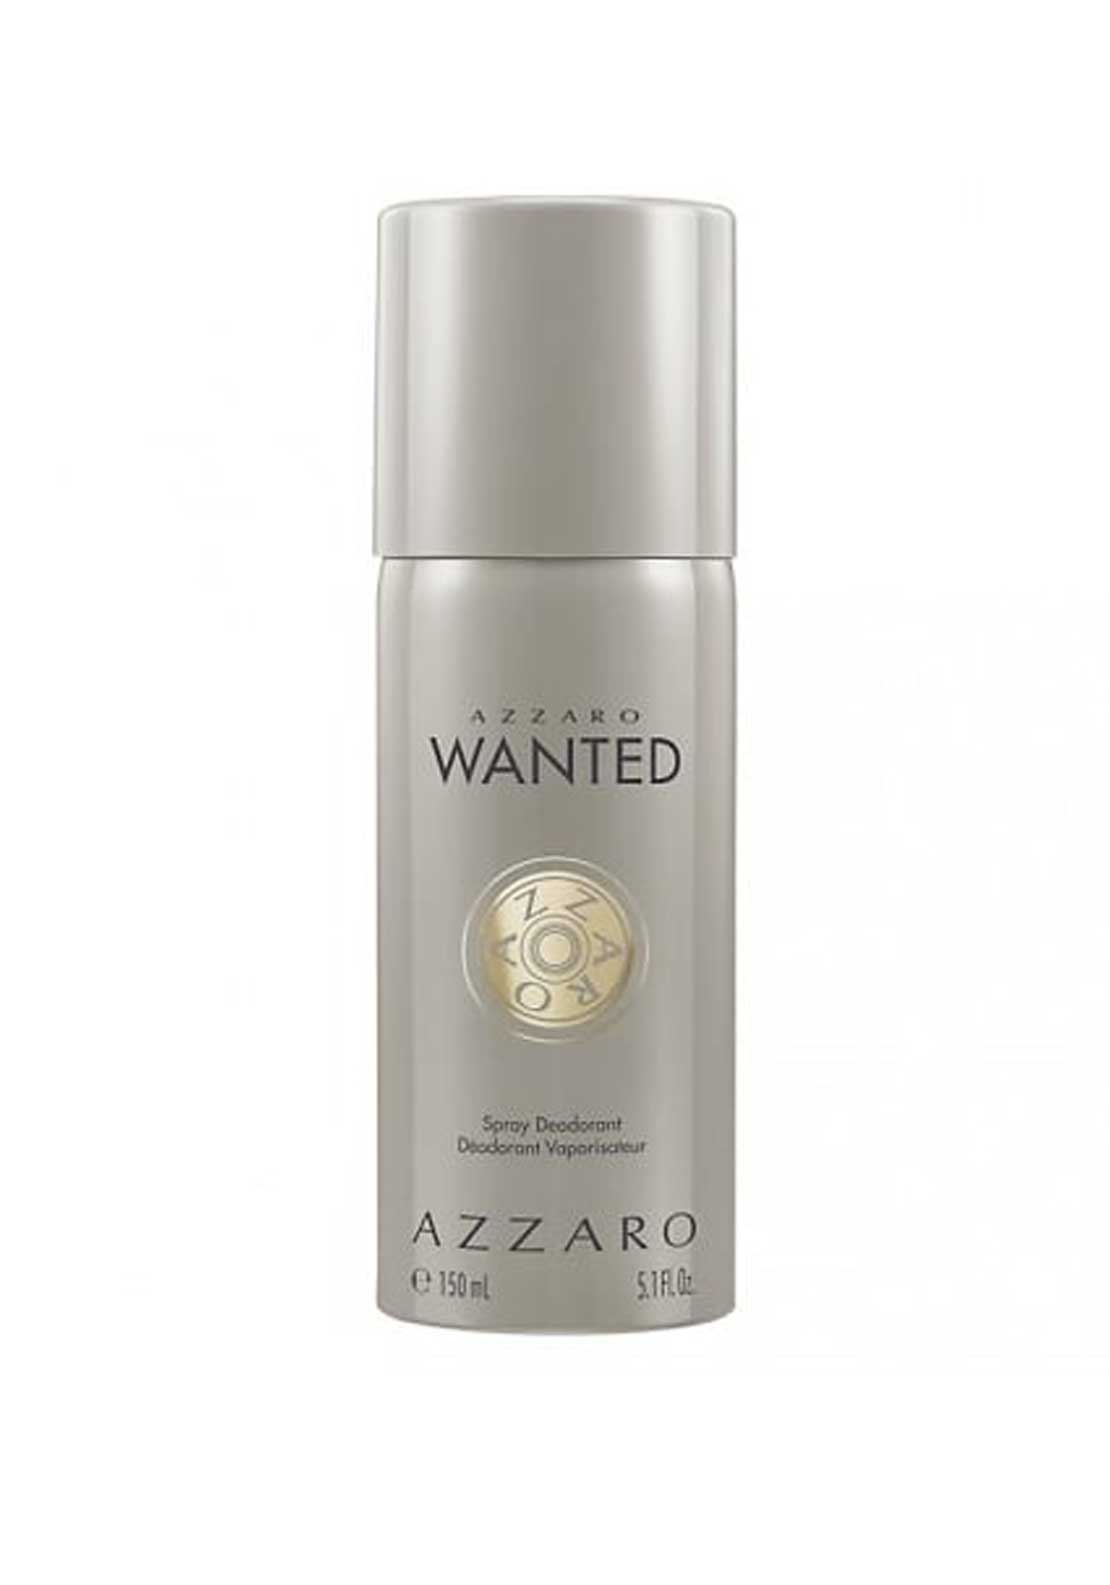 Azzaro Wanted Spray Deodorant